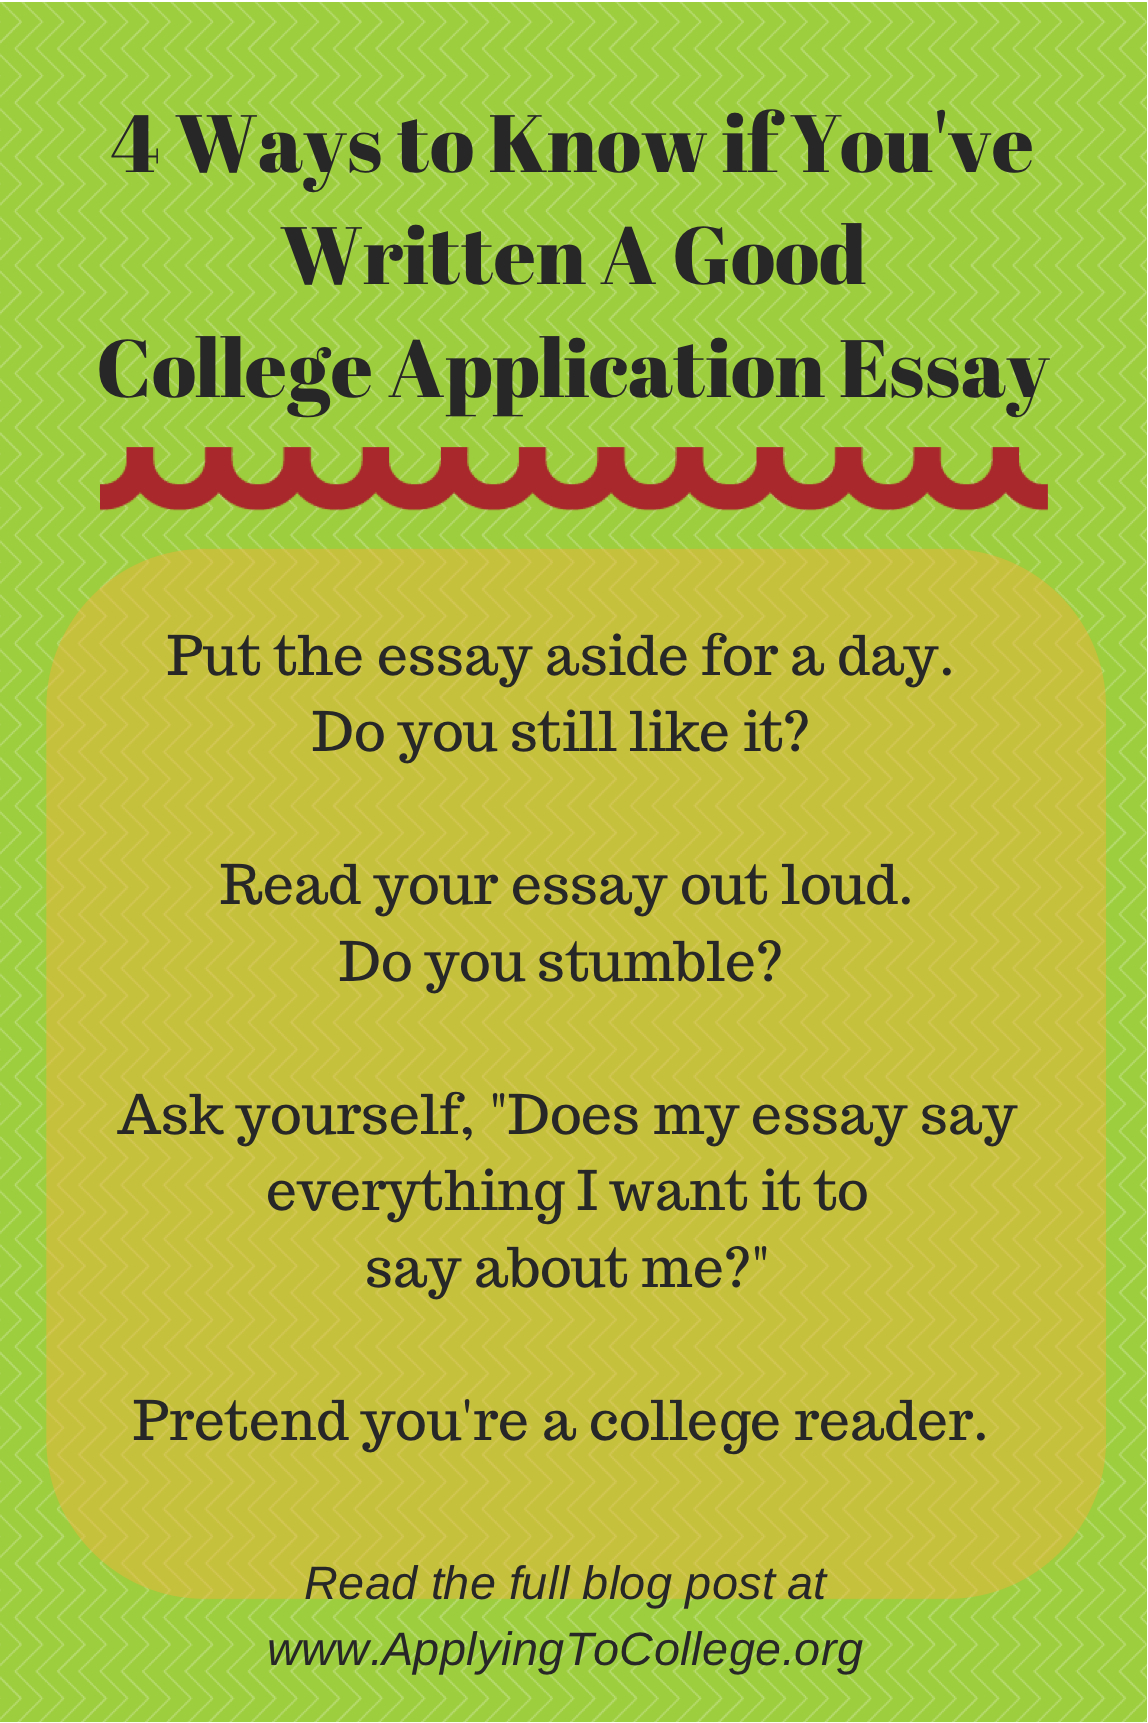 what to include in a college application essay How to write a college admissions essay grab the reader's attention and make him or her want to read your college admissions essay, not put it at the bottom of.